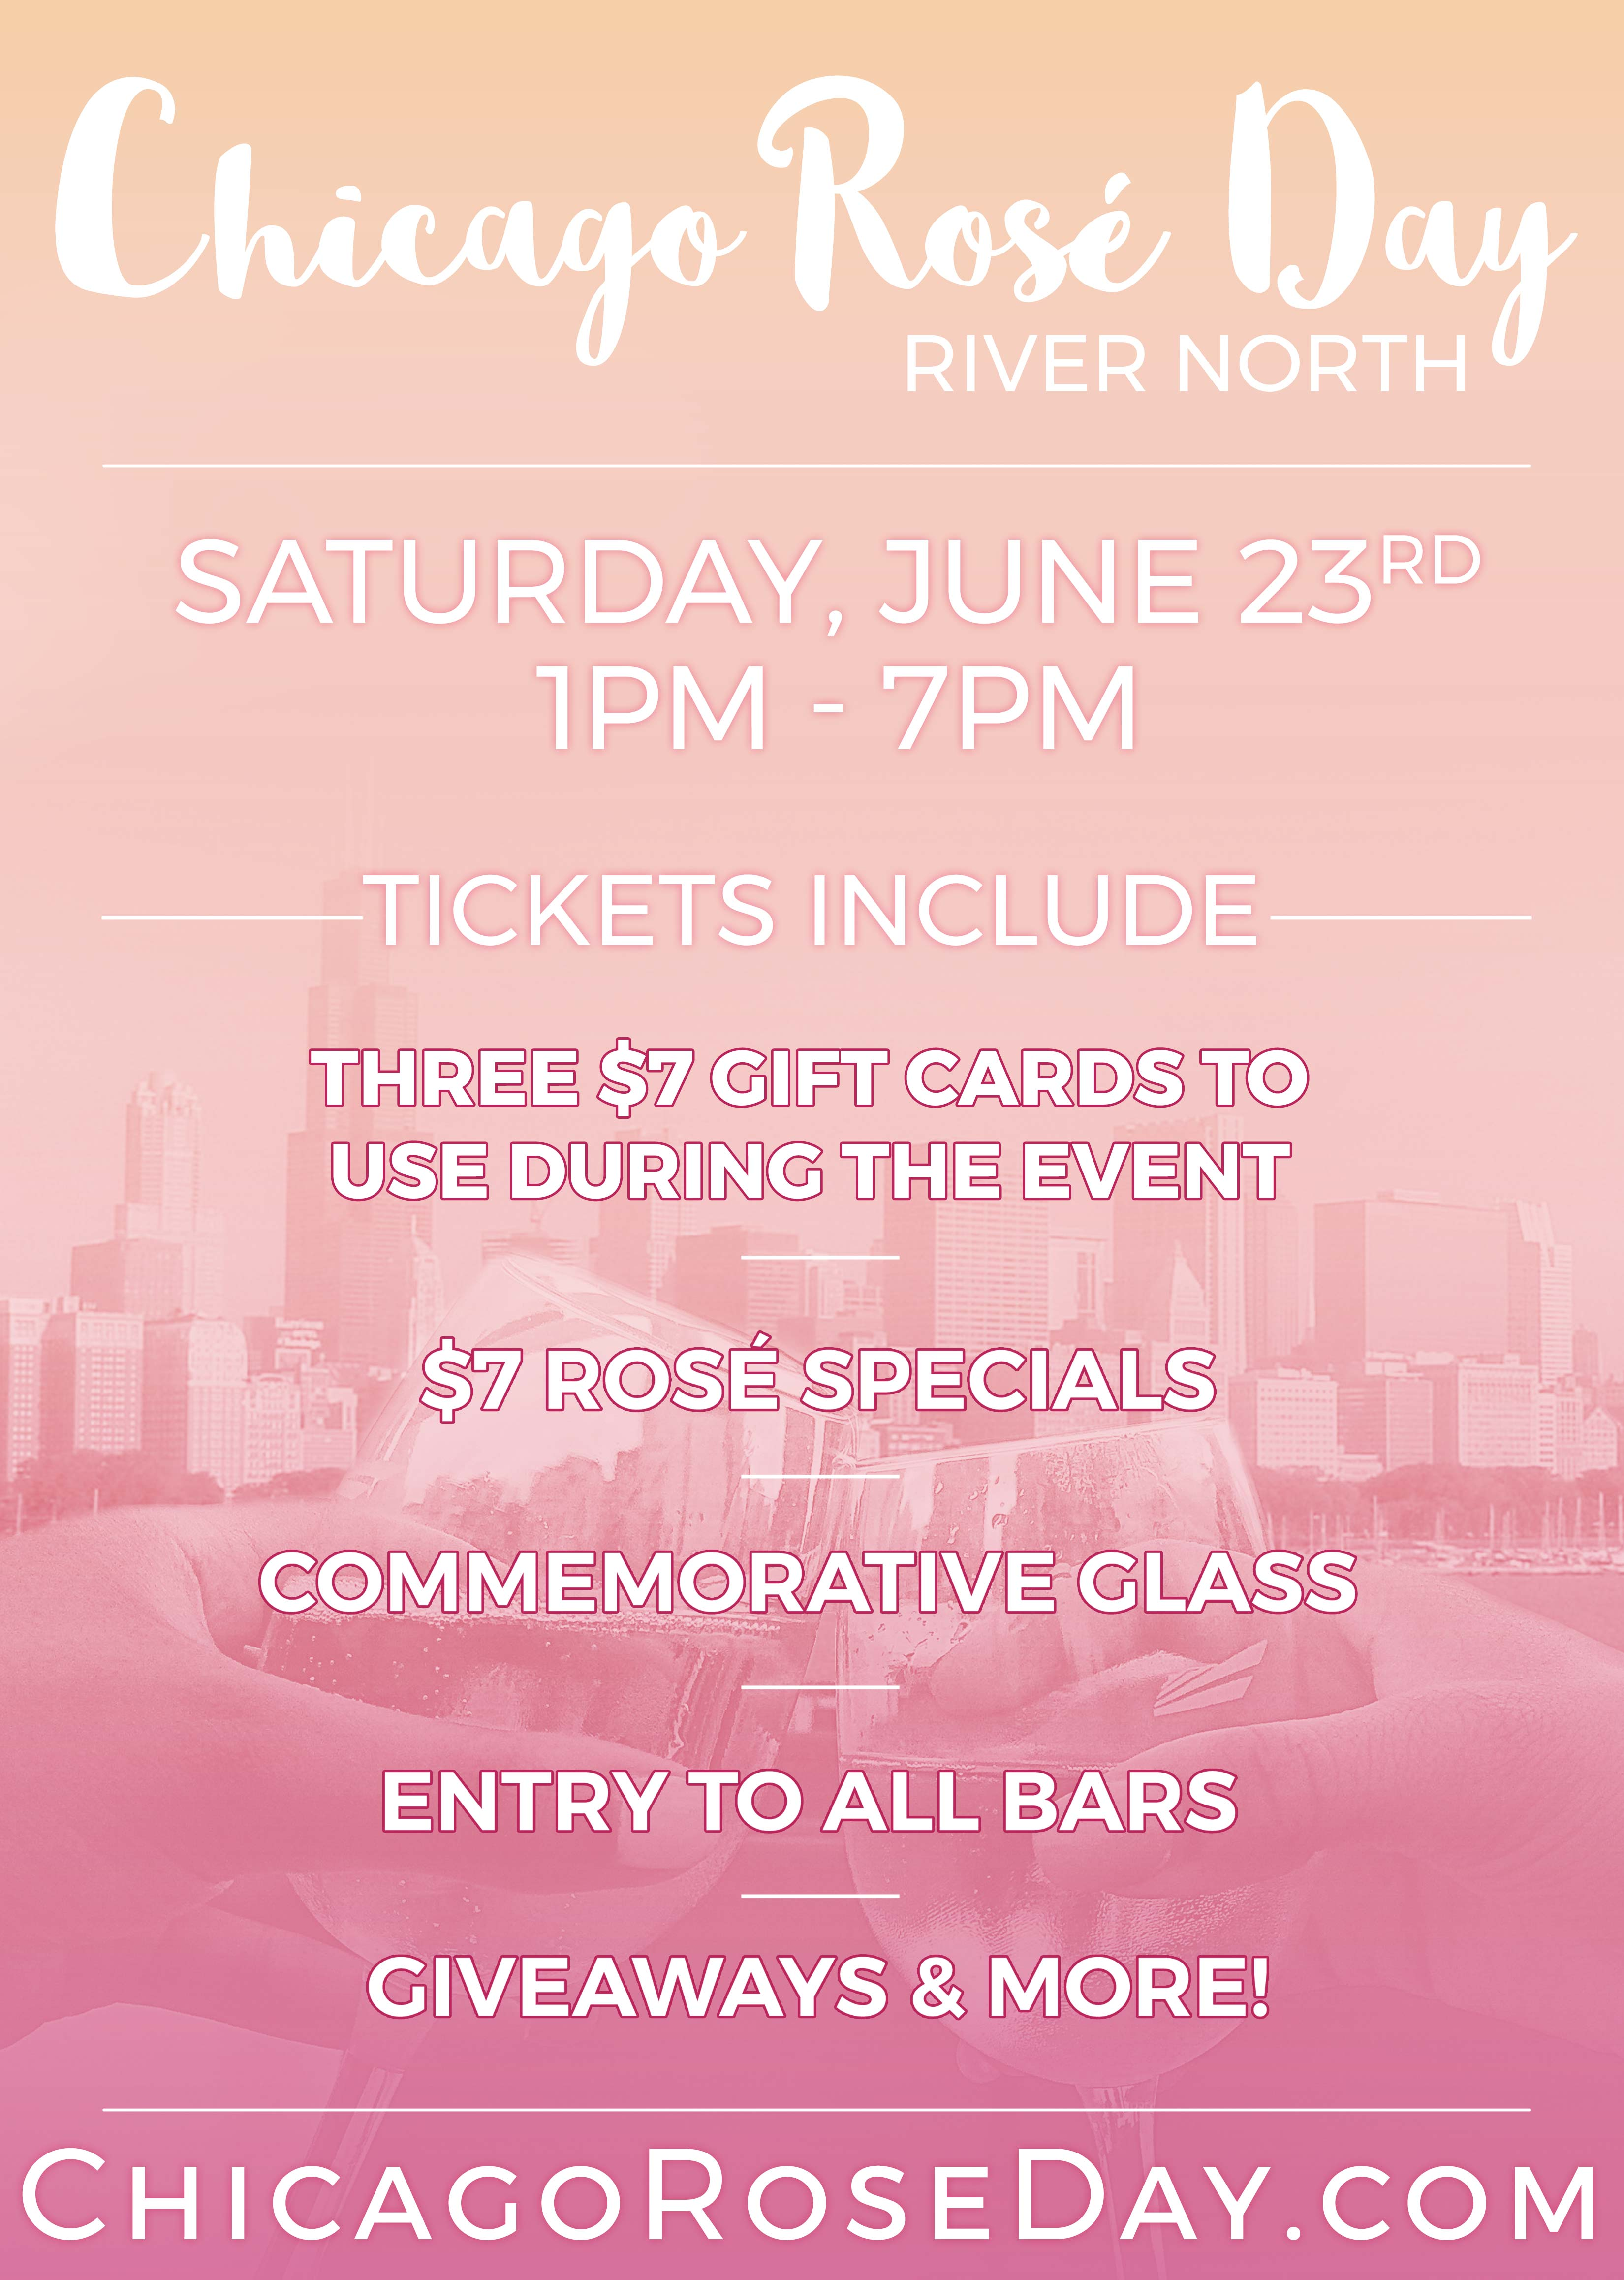 Chicago Rosé Day in River North - Tickets include: Admission to all participating venues, Three $7 Gift Cards To Use On The Crawl, Access to Amazing Drink Specials Including $7 Rosé, Commemorative Glass, Giveaways & More!